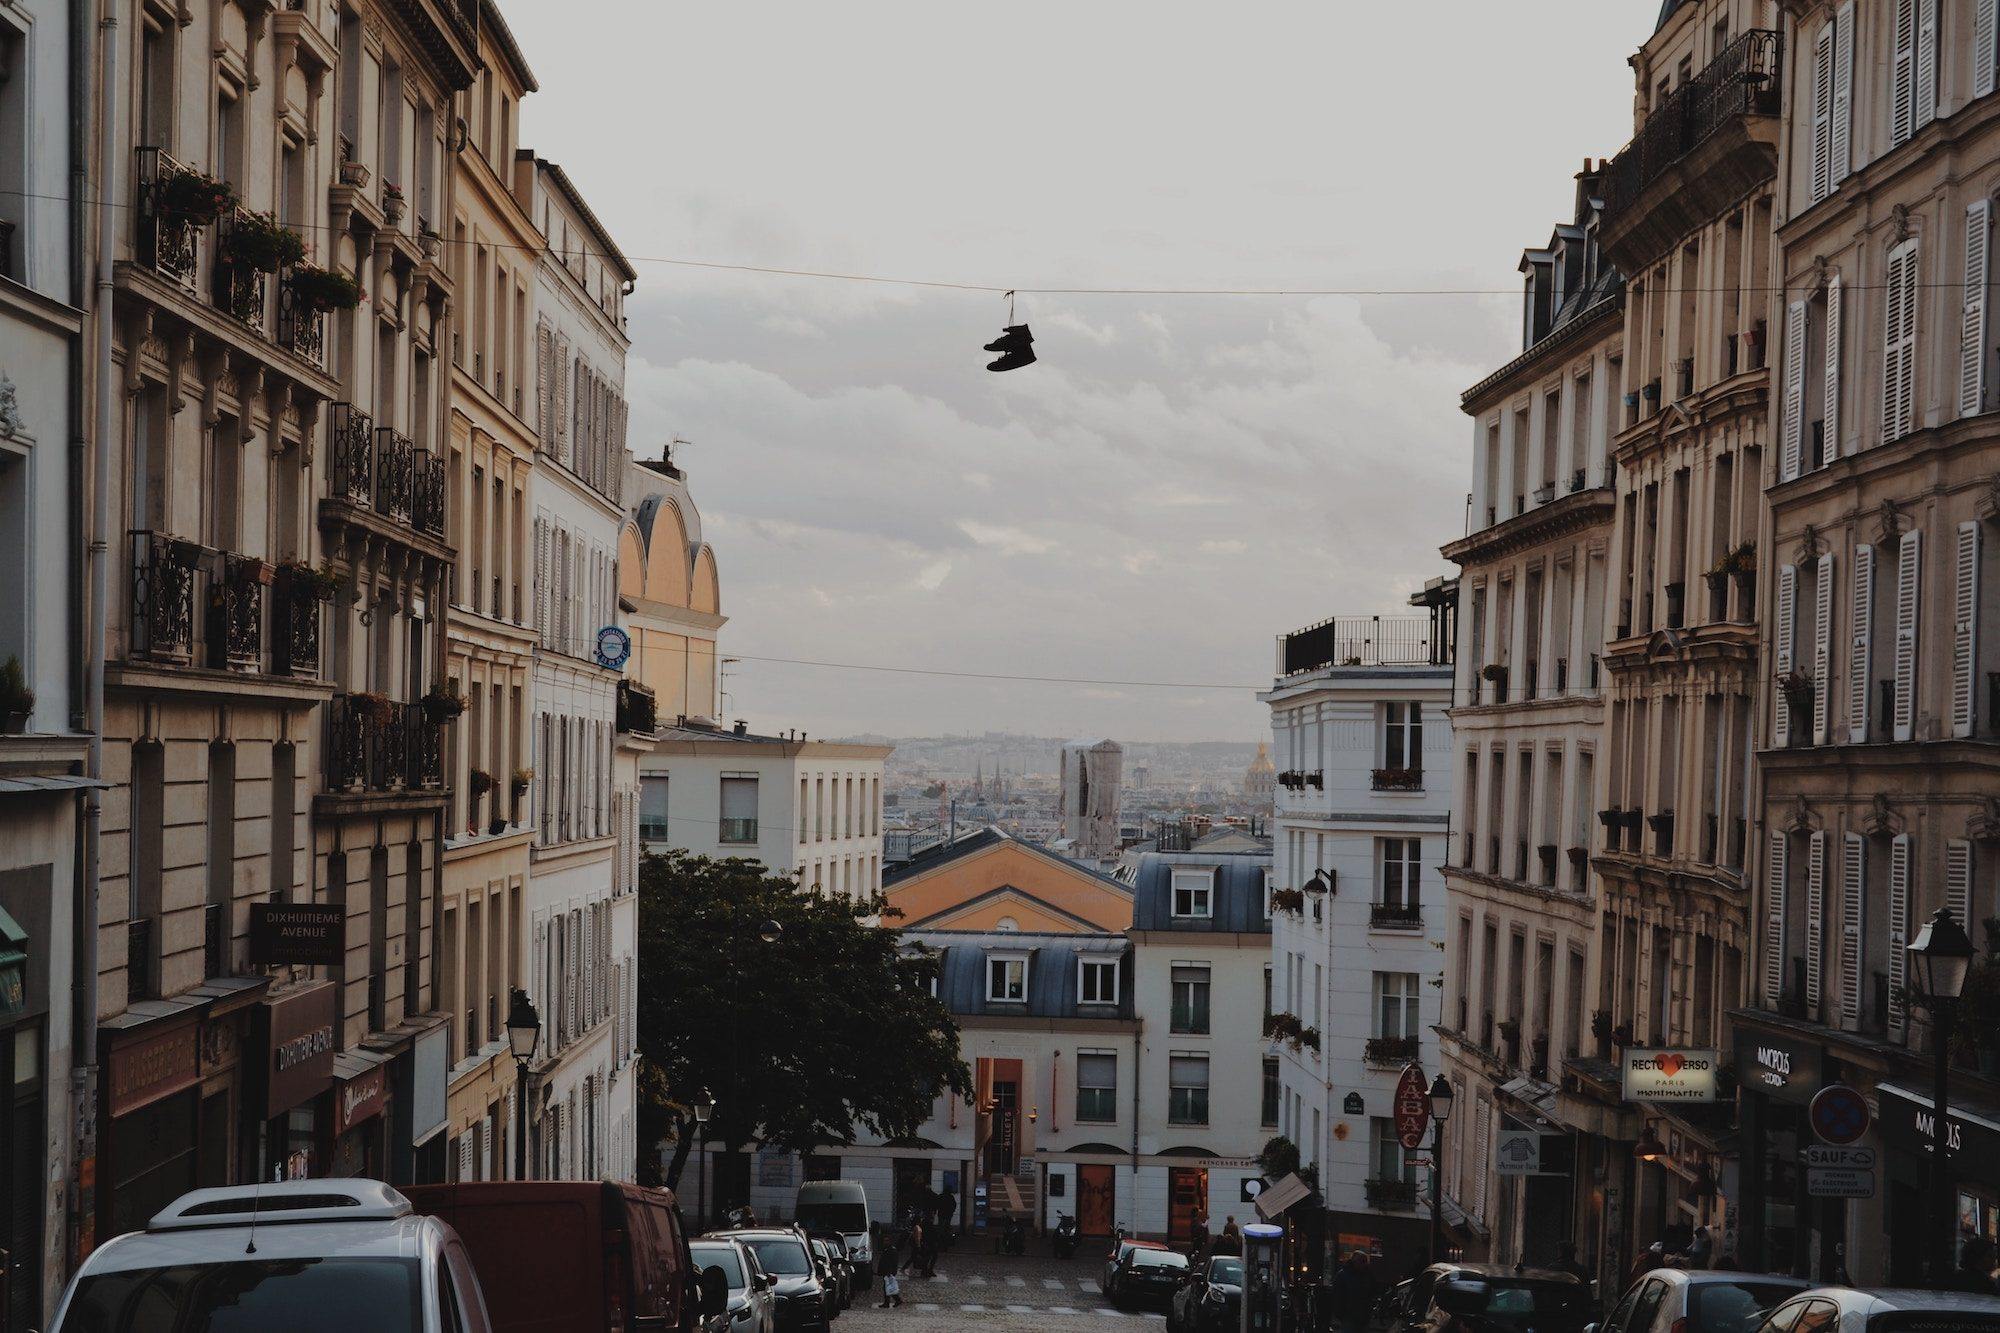 A street scene of Montmartre as the sun sets, which apartment buildings on either side and shoes hanging on street cables in the center.